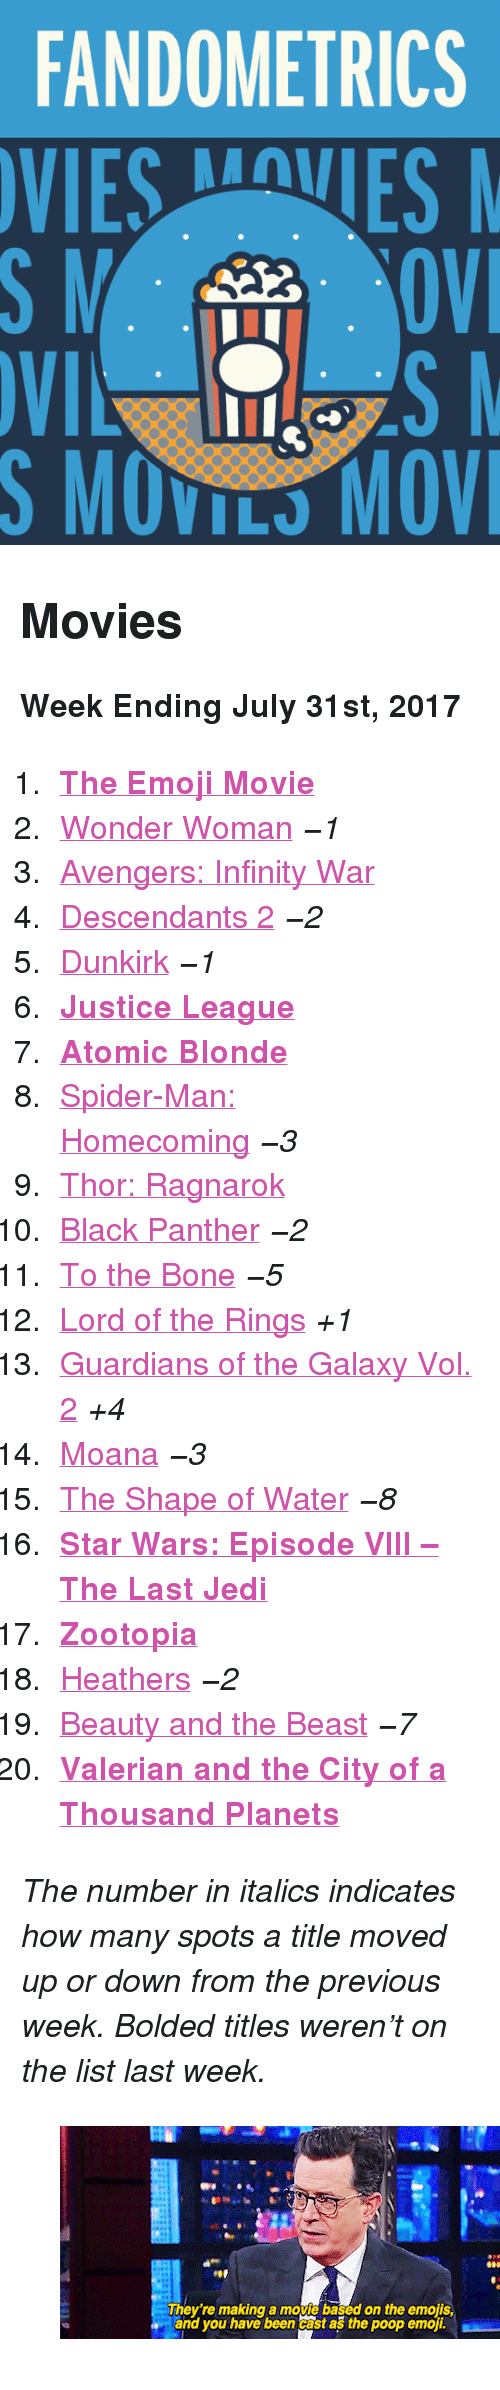 """spider-man-homecoming: FANDOMETRICS  VIESVES  S MOVILS MOV <h2>Movies</h2><p><b>Week Ending July 31st, 2017</b></p><ol><li><a href=""""http://tumblr.co/61328tvbj""""><b>The Emoji Movie</b></a></li><li><a href=""""http://tumblr.co/61338tvbd"""">Wonder Woman</a><i><i>−1</i></i></li><li><a href=""""http://tumblr.co/61348tvbe"""">Avengers: Infinity War</a></li><li><a href=""""http://tumblr.co/61358tvb5"""">Descendants 2</a><i><i>−2</i></i></li><li><a href=""""http://tumblr.co/61378tvb9"""">Dunkirk</a><i><i>−1</i></i></li><li><a href=""""http://tumblr.co/61388tvbi""""><b>Justice League</b></a></li><li><a href=""""http://tumblr.co/61398tvbc""""><b>Atomic Blonde</b></a></li><li><a href=""""http://tumblr.co/61308tvbY"""">Spider-Man: Homecoming</a><i><i>−3</i></i></li><li><a href=""""http://tumblr.co/61318tvbl"""">Thor: Ragnarok</a></li><li><a href=""""http://tumblr.co/61328tvbm"""">Black Panther</a><i><i>−2</i></i></li><li><a href=""""http://tumblr.co/61338tvbW"""">To the Bone</a><i><i>−5</i></i></li><li><a href=""""http://tumblr.co/61348tvbo"""">Lord of the Rings</a><i>+1</i></li><li><a href=""""http://tumblr.co/61358tvbU"""">Guardians of the Galaxy Vol. 2</a><i>+4</i></li><li><a href=""""http://tumblr.co/61368tvbq"""">Moana</a><i><i>−3</i></i></li><li><a href=""""http://tumblr.co/61378tvbS"""">The Shape of Water</a><i><i>−8</i></i></li><li><a href=""""http://tumblr.co/61388tvbs""""><b>Star Wars: Episode VIII – The Last Jedi</b></a></li><li><a href=""""http://tumblr.co/61398tvbt""""><b>Zootopia</b></a></li><li><a href=""""http://tumblr.co/61308tvbQ"""">Heathers</a><i><i>−2</i></i></li><li><a href=""""http://tumblr.co/61318tvbv"""">Beauty and the Beast</a><i><i>−7</i></i></li><li><a href=""""http://tumblr.co/61328tvba""""><b>Valerian and the City of a Thousand Planets</b></a></li></ol><p><i>The number in italics indicates how many spots a title moved up or down from the previous week. Bolded titles weren't on the list last week.</i></p><figure class=""""tmblr-full"""" data-orig-height=""""375"""" data-orig-width=""""500"""" data-tumblr-attribution=""""beeishappy:ydBJkfNQHjAKiyB9mcORPw:ZyQj5y2J3WhHs""""><img src=""""ht"""